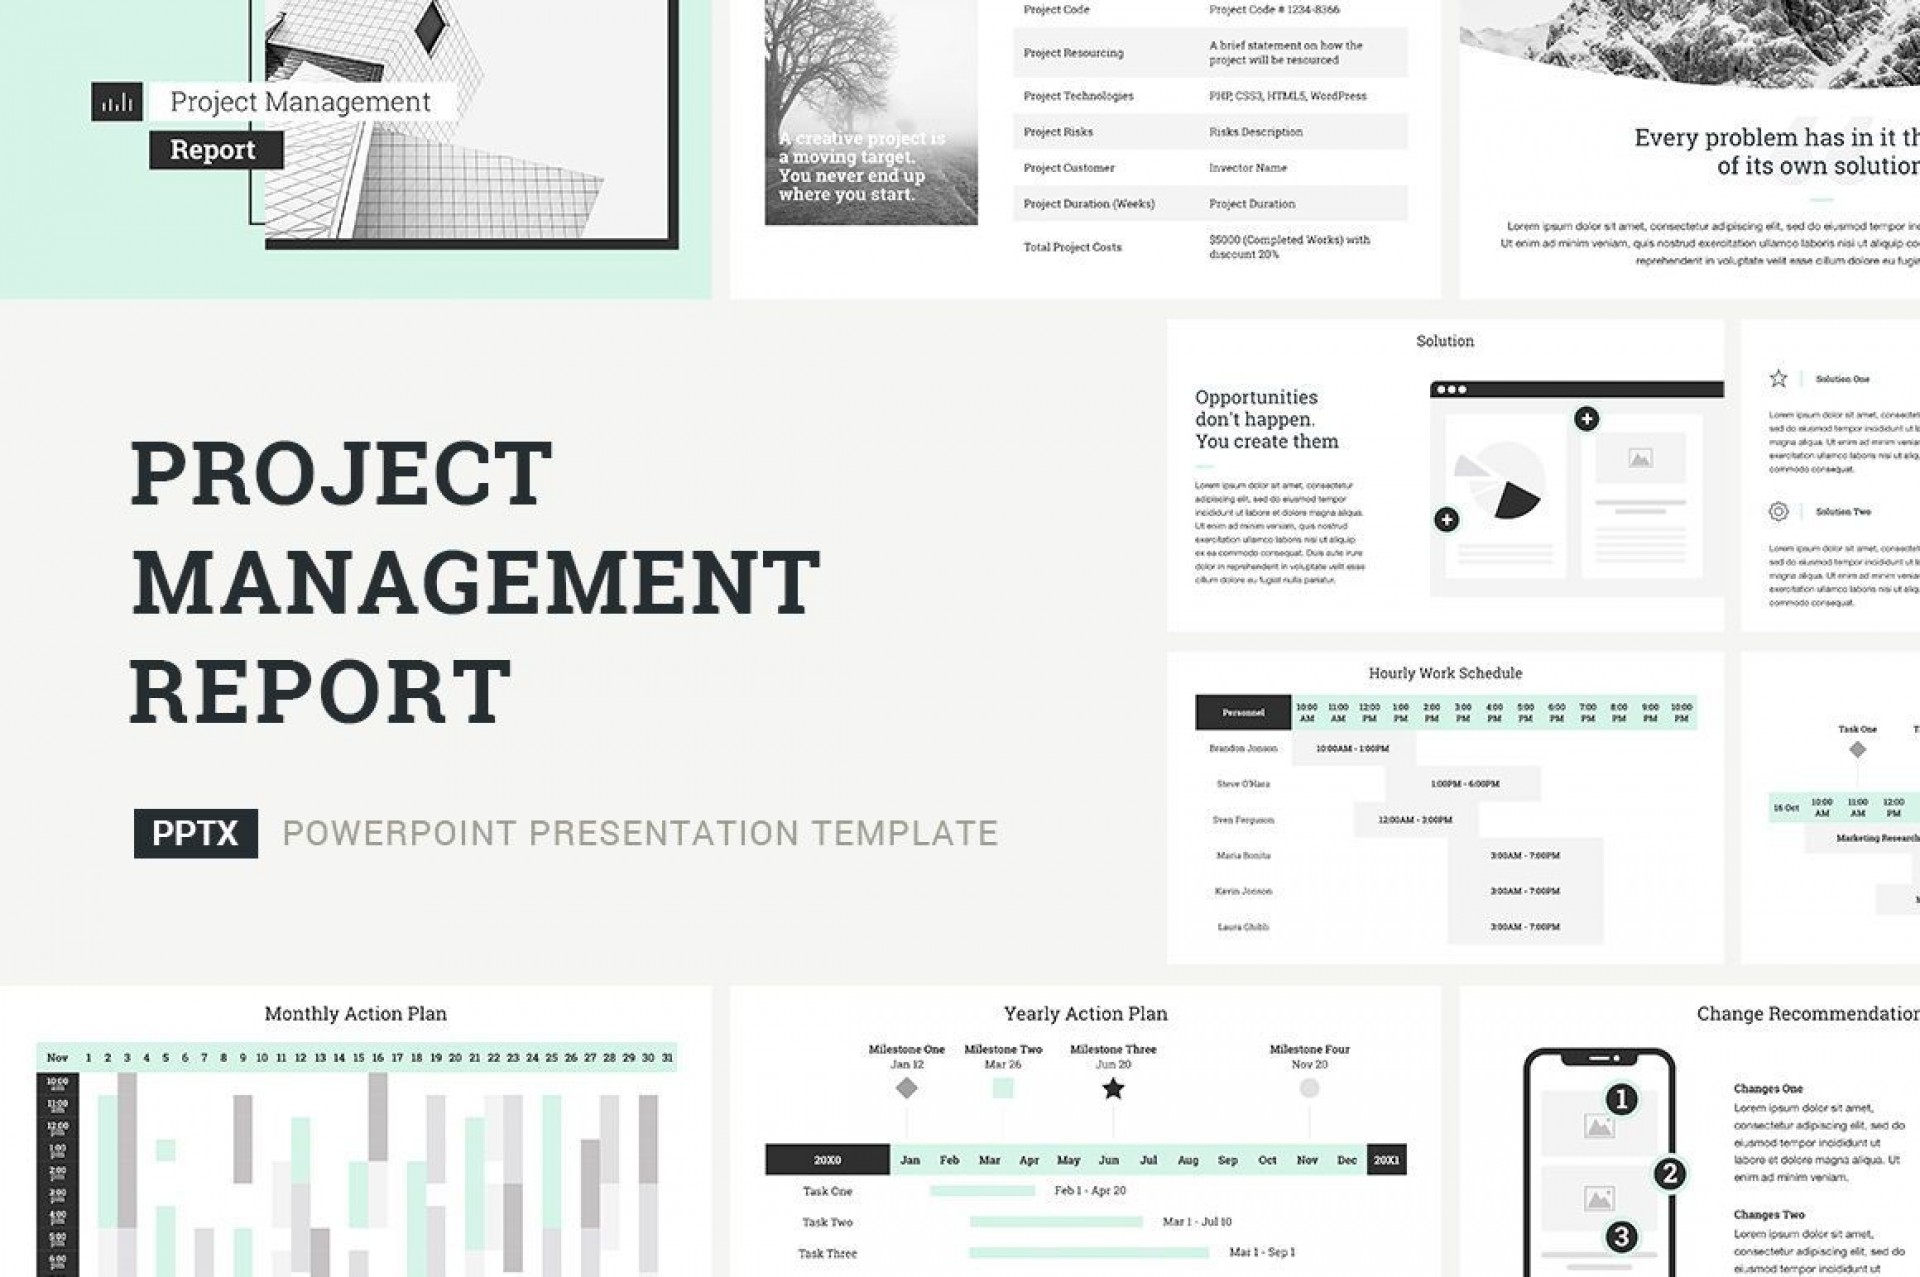 006 Awesome Project Management Report Template Ppt Picture  Weekly Statu1920